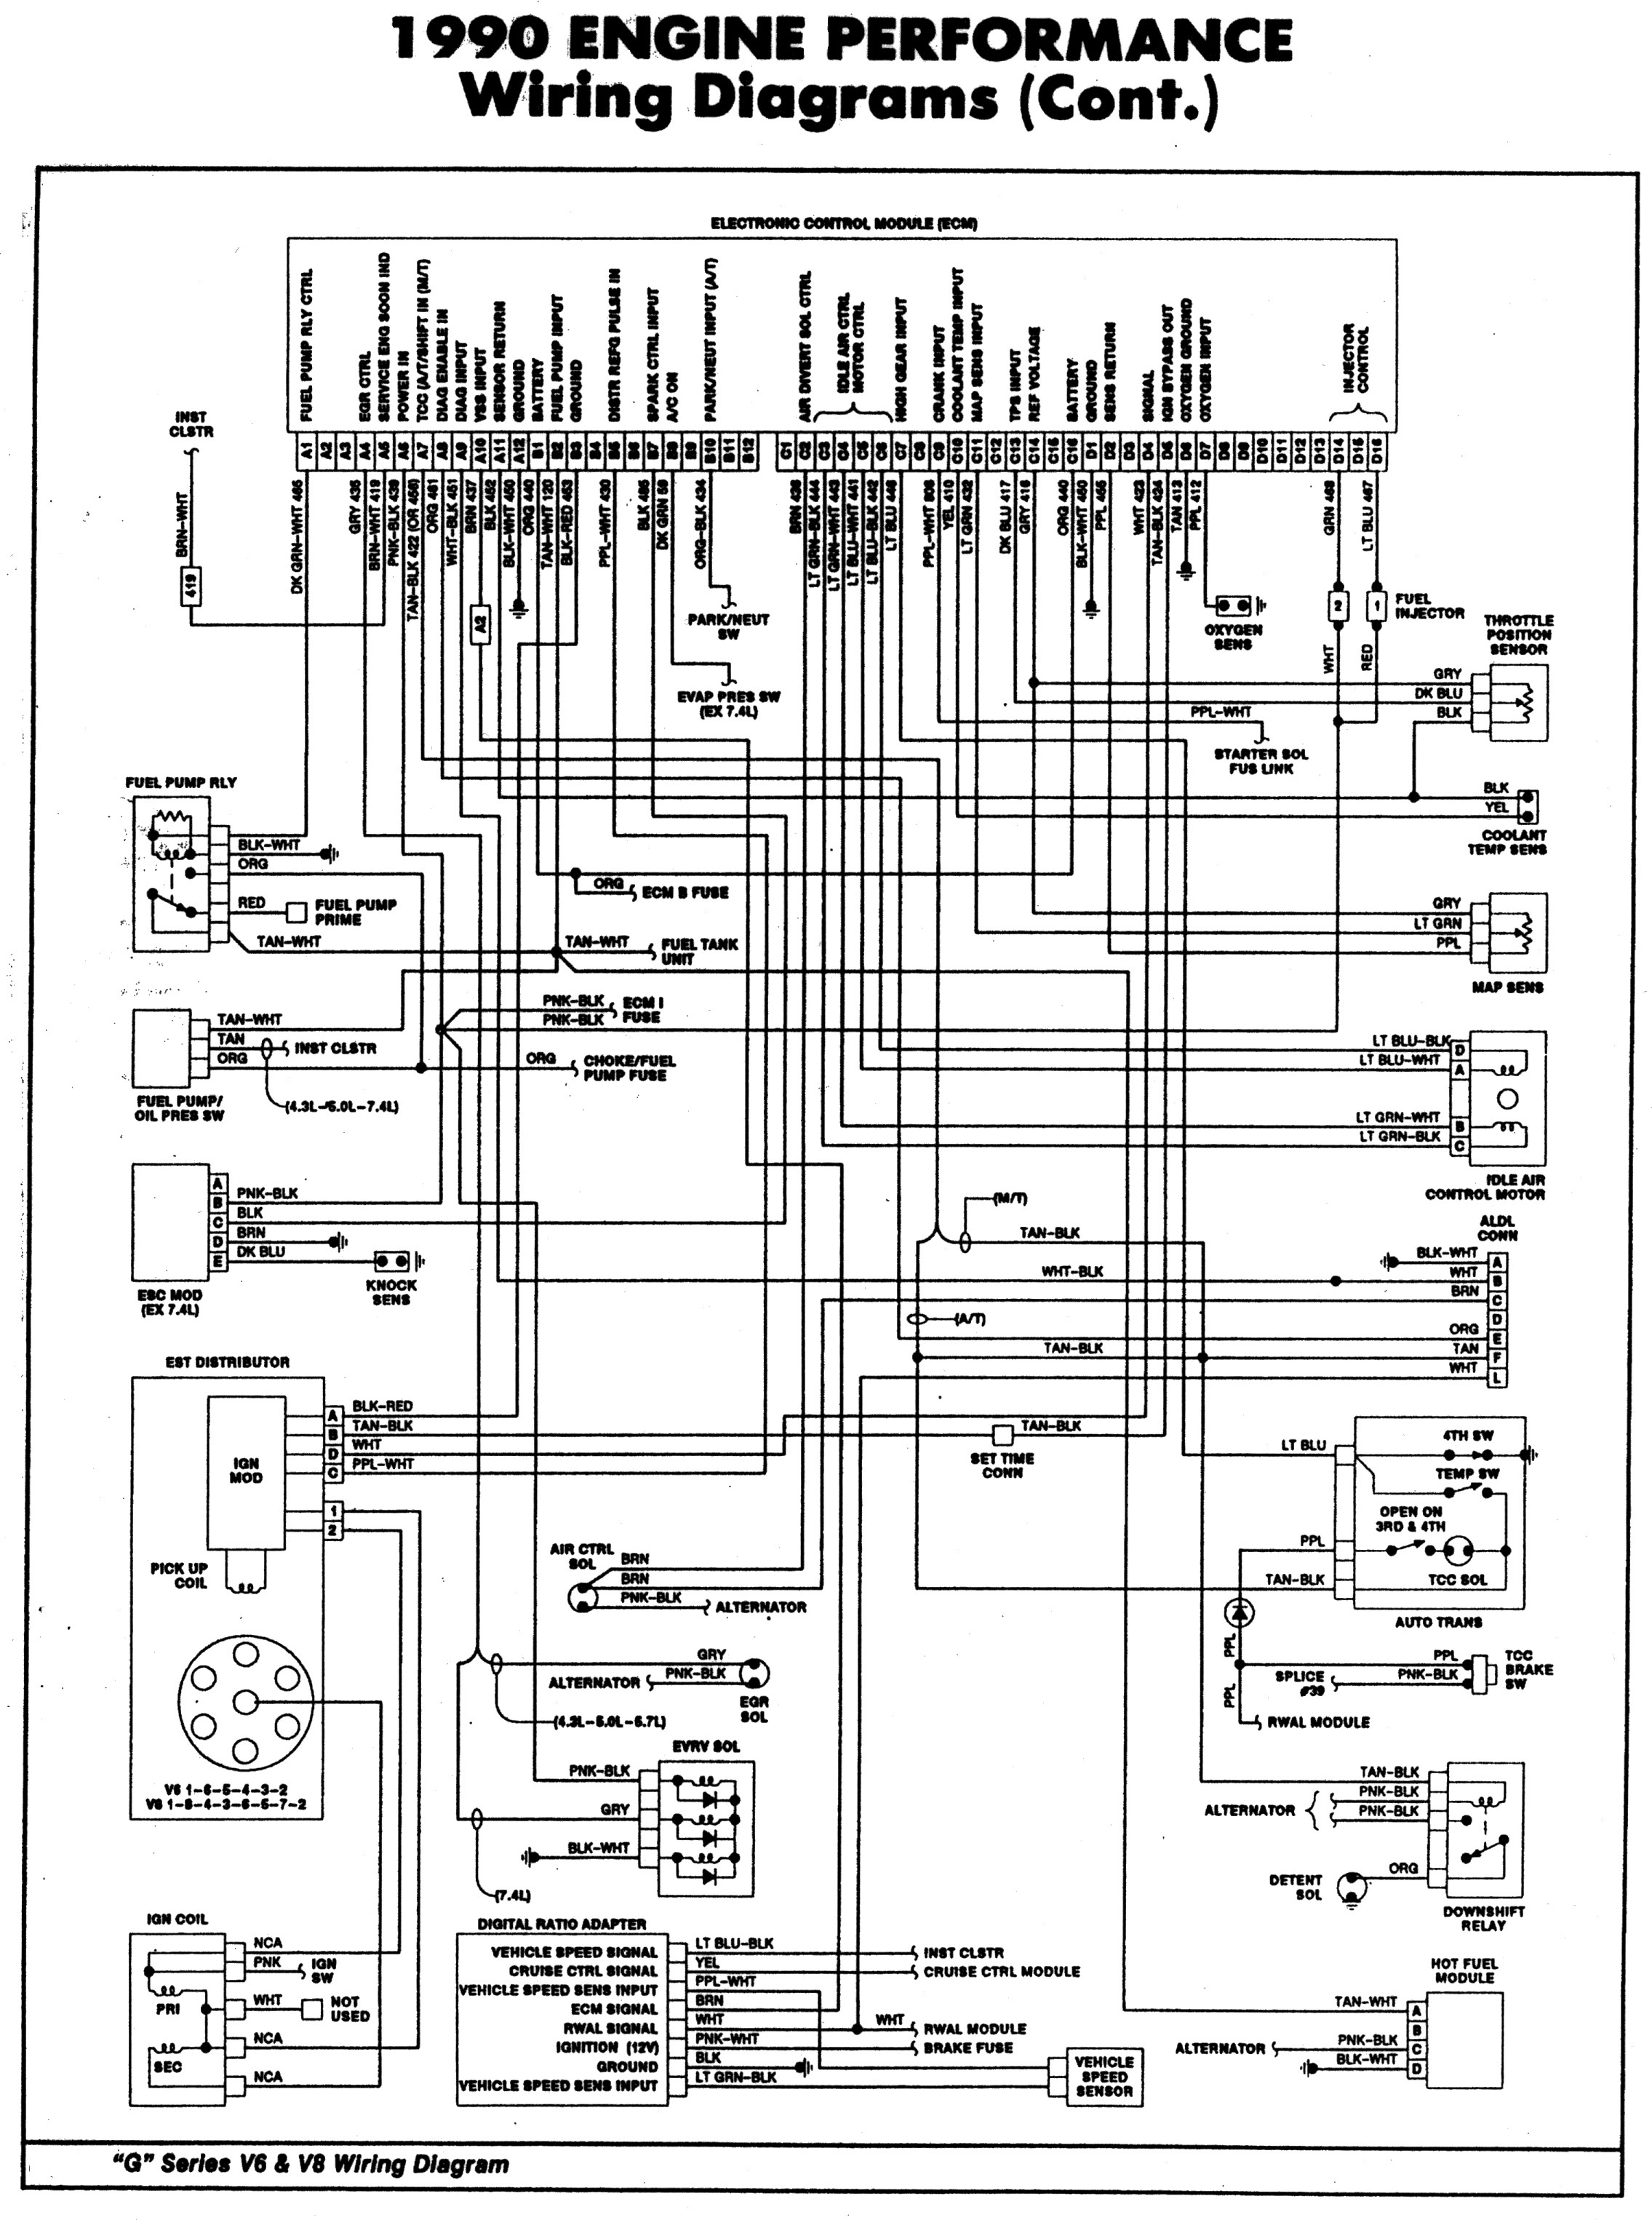 1988s 10 Truck Wiring Diagram Reveolution Of 95 97 Silverado Images Gallery